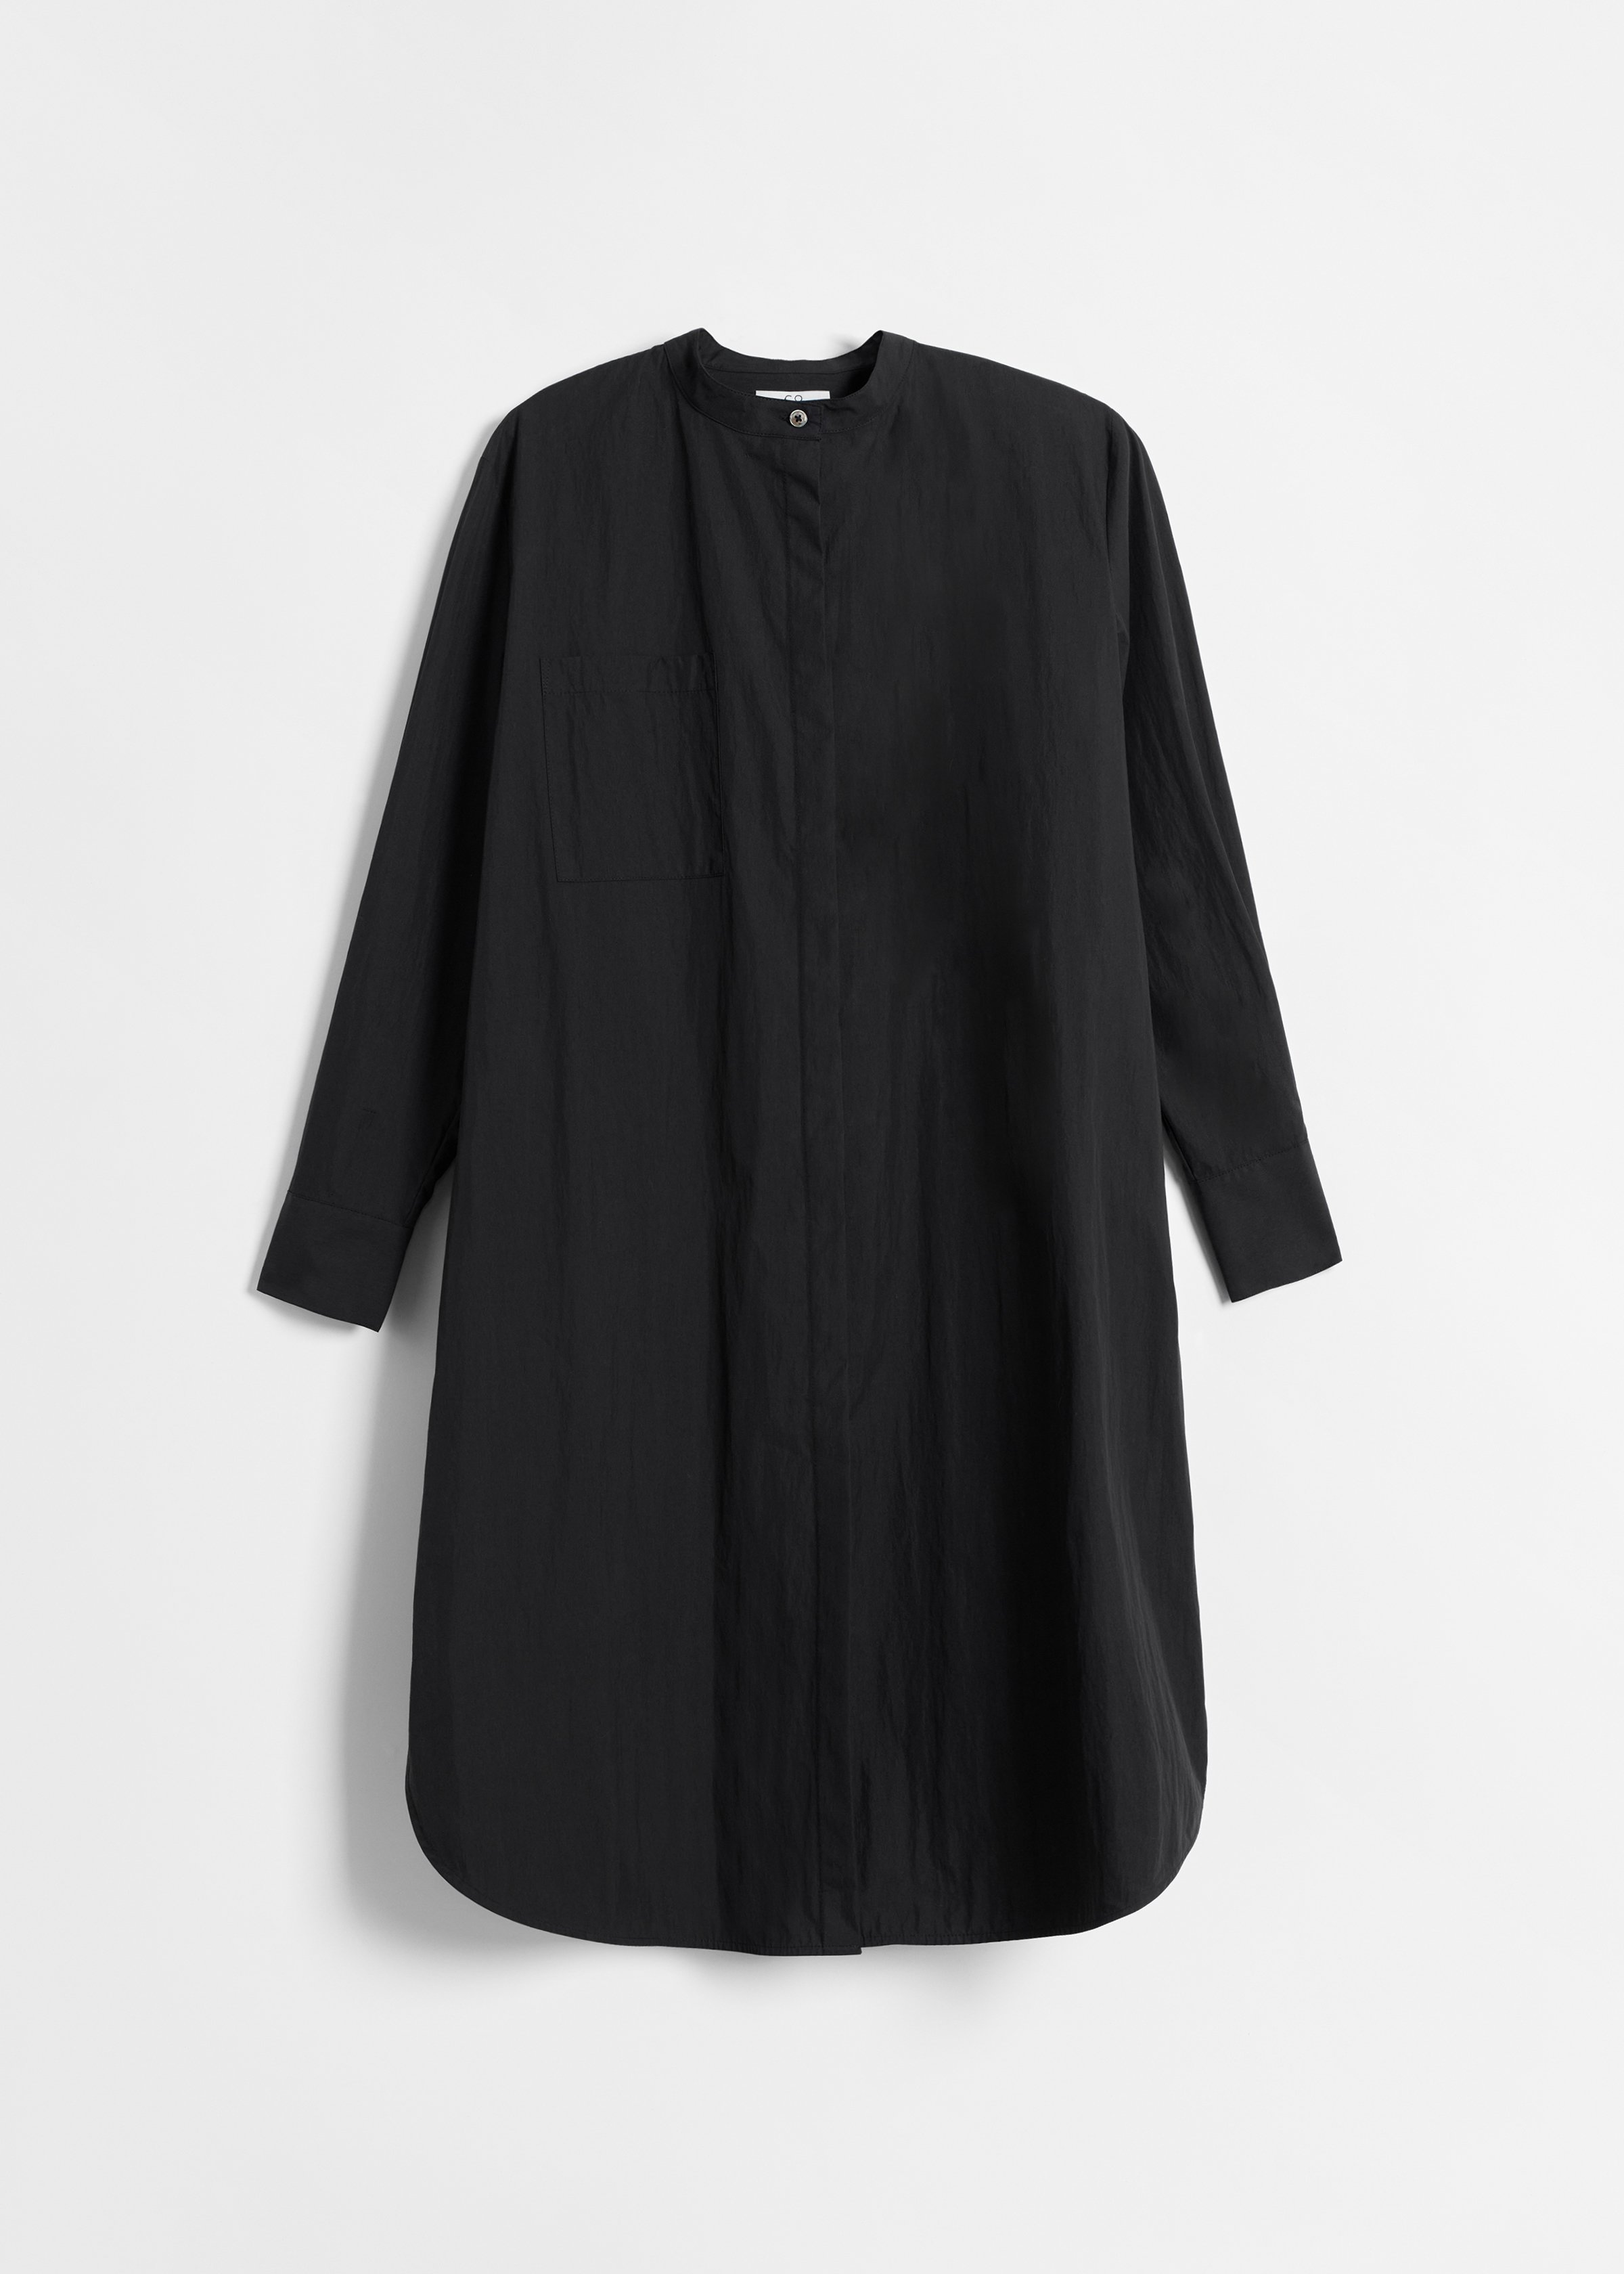 Belted Long Sleeve Tunic - Black - by Zoe Gherter for Co